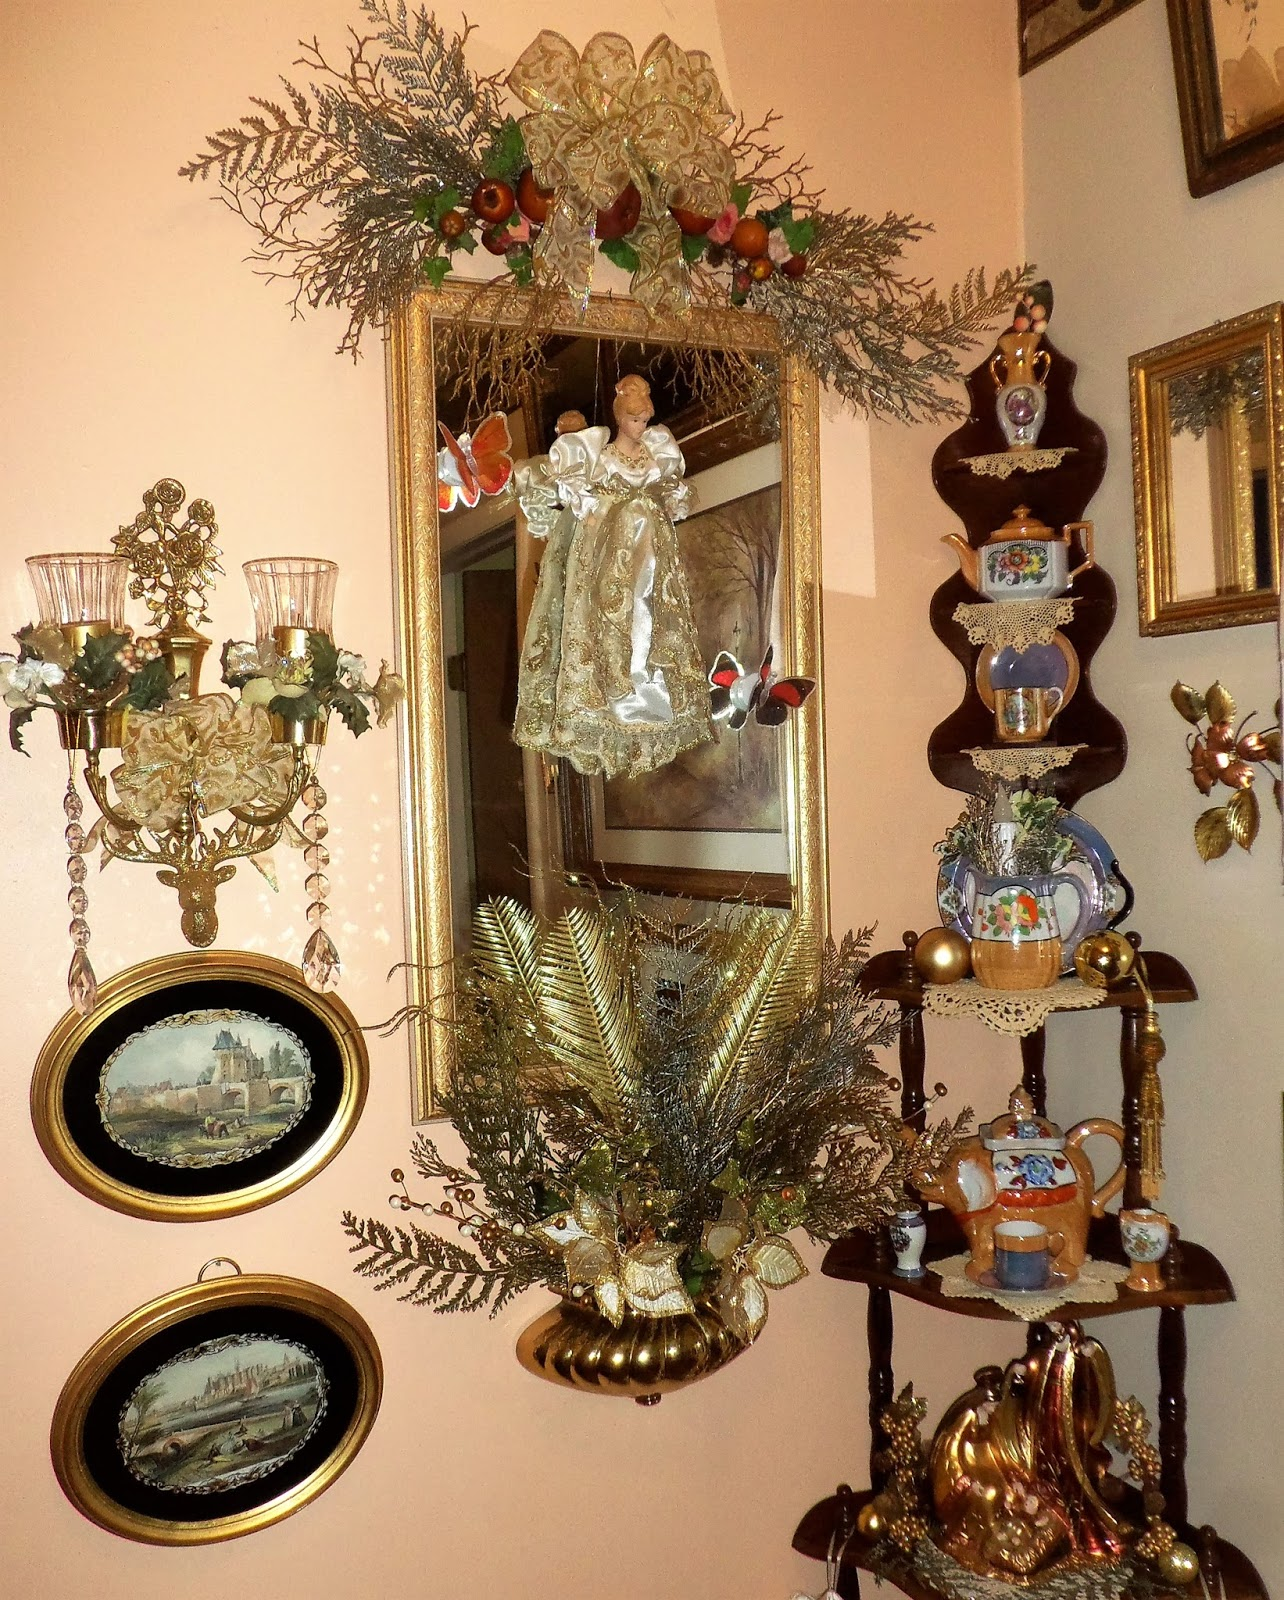 A debbie dabble christmas christmas in the master bedroom for Next home xmas decorations